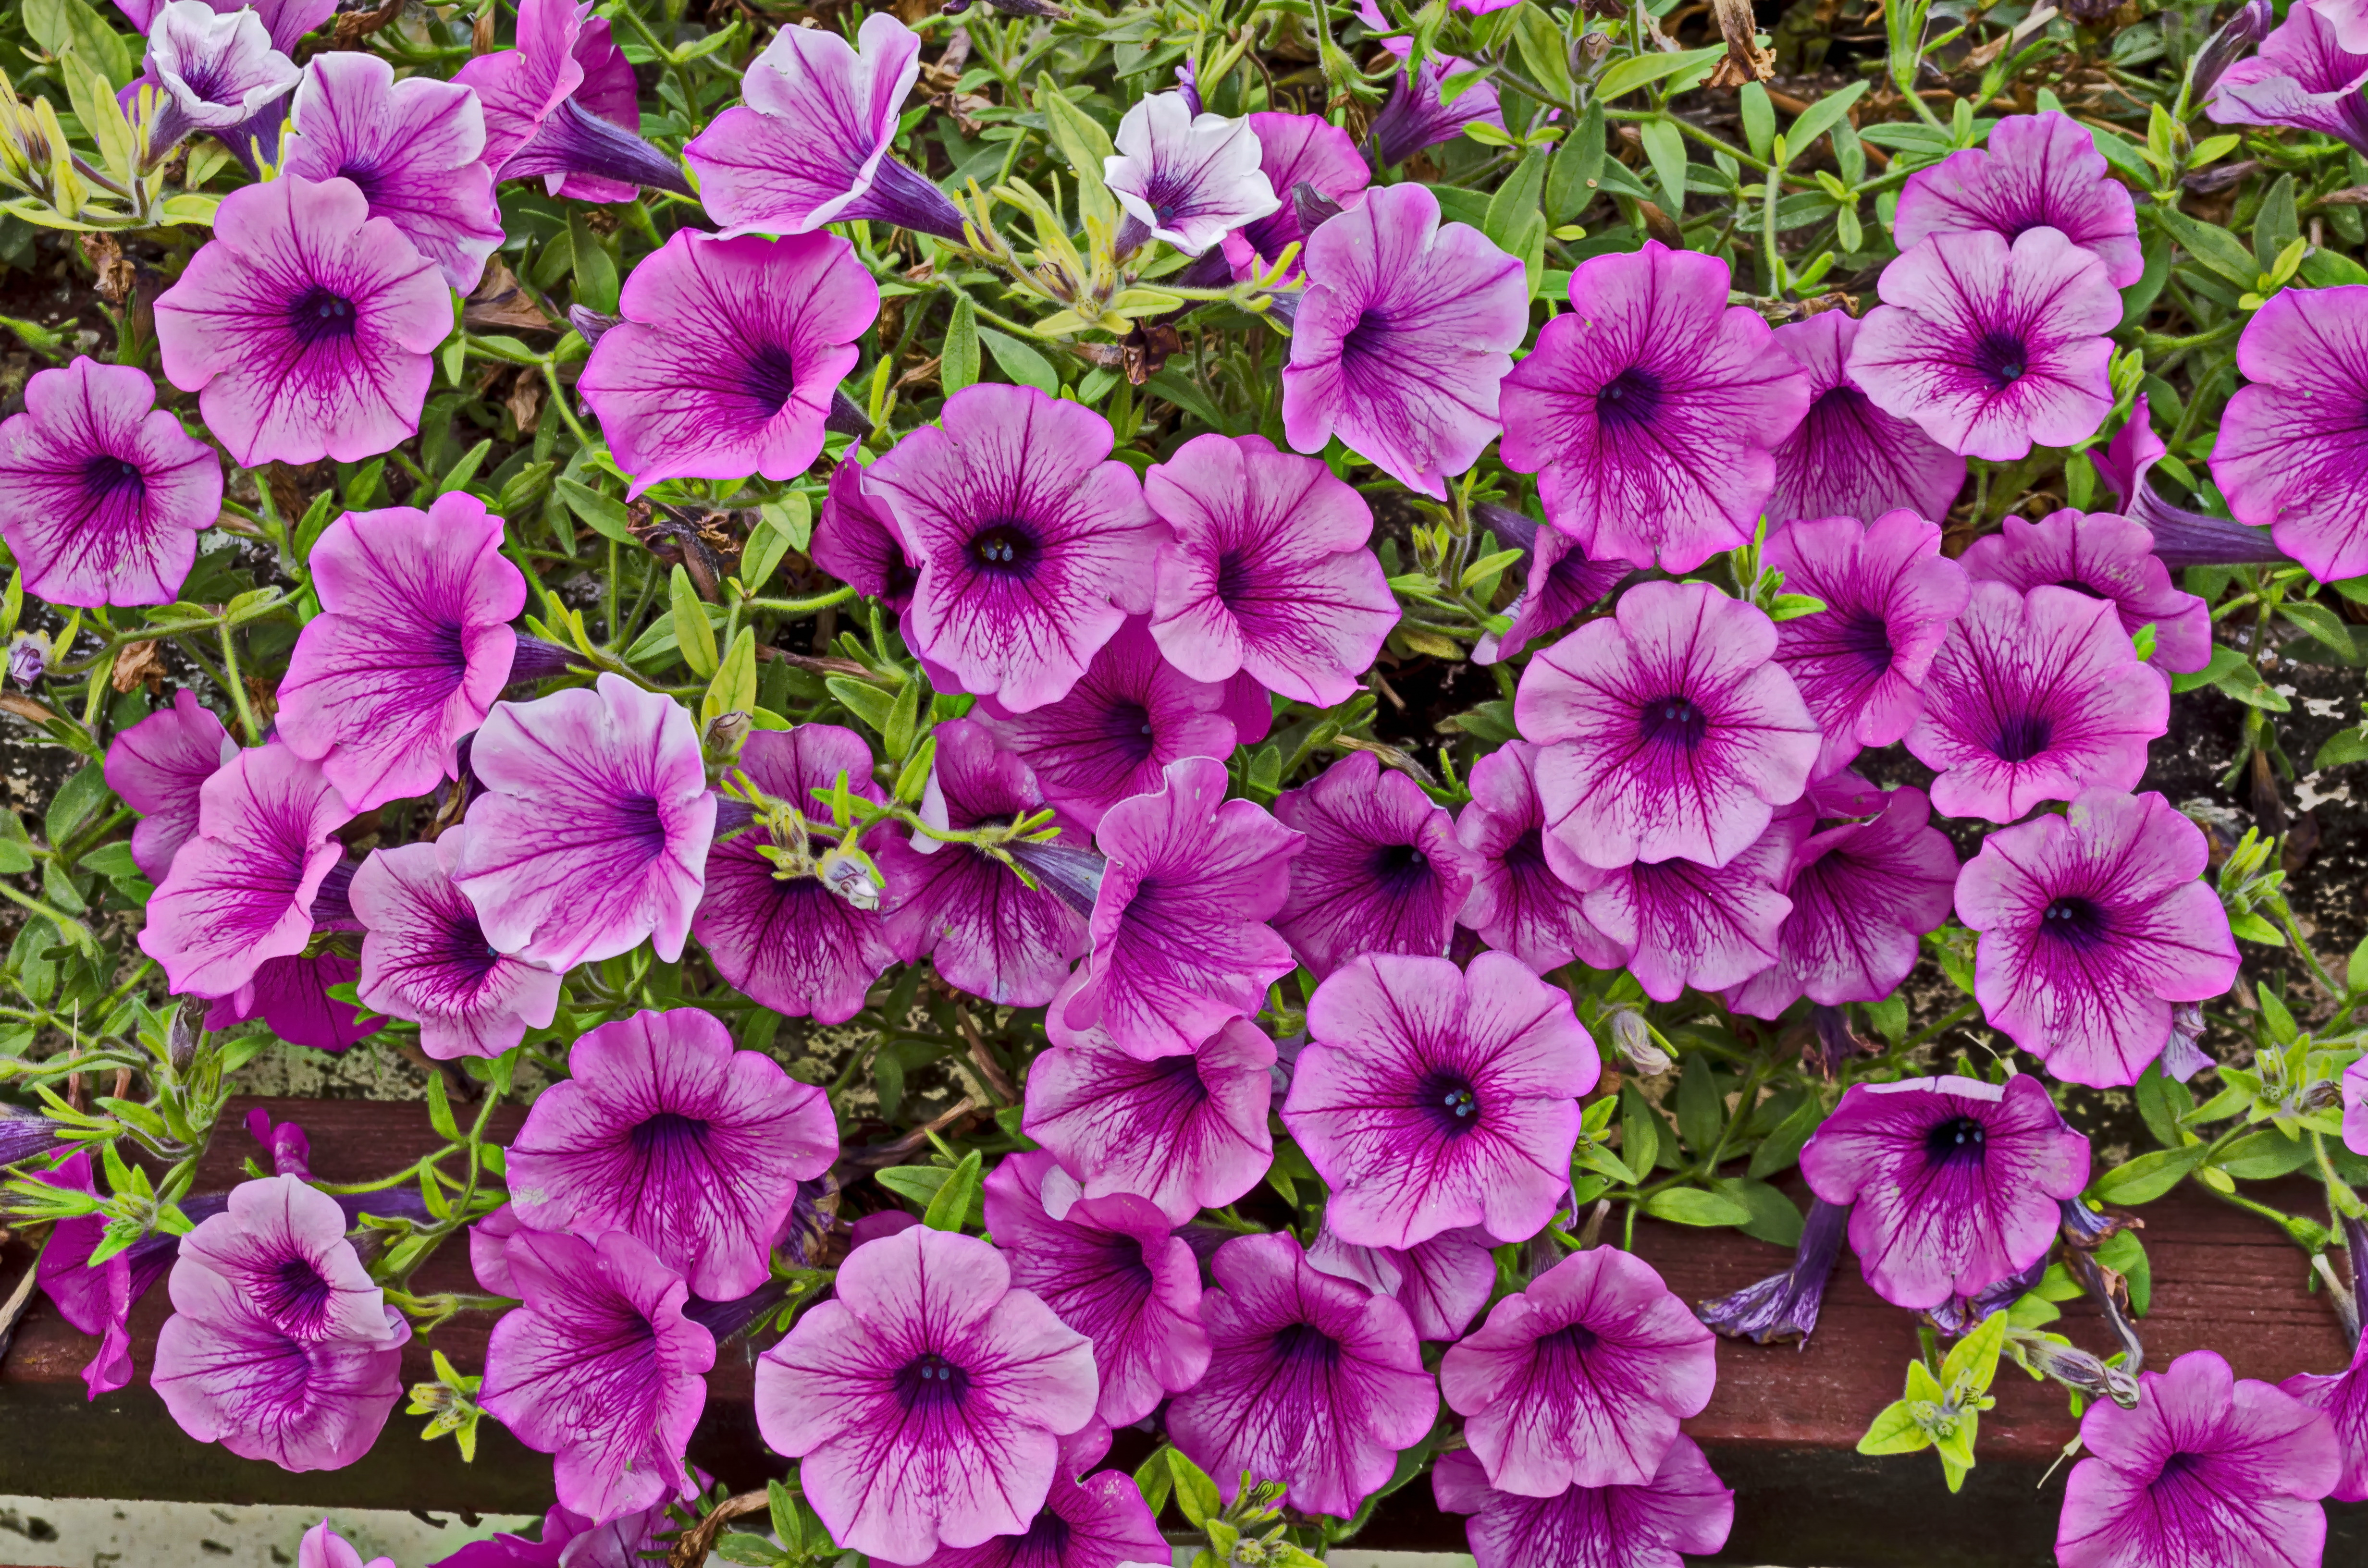 How To Save A Wave Petunia In A Hanging Basket That Is Getting